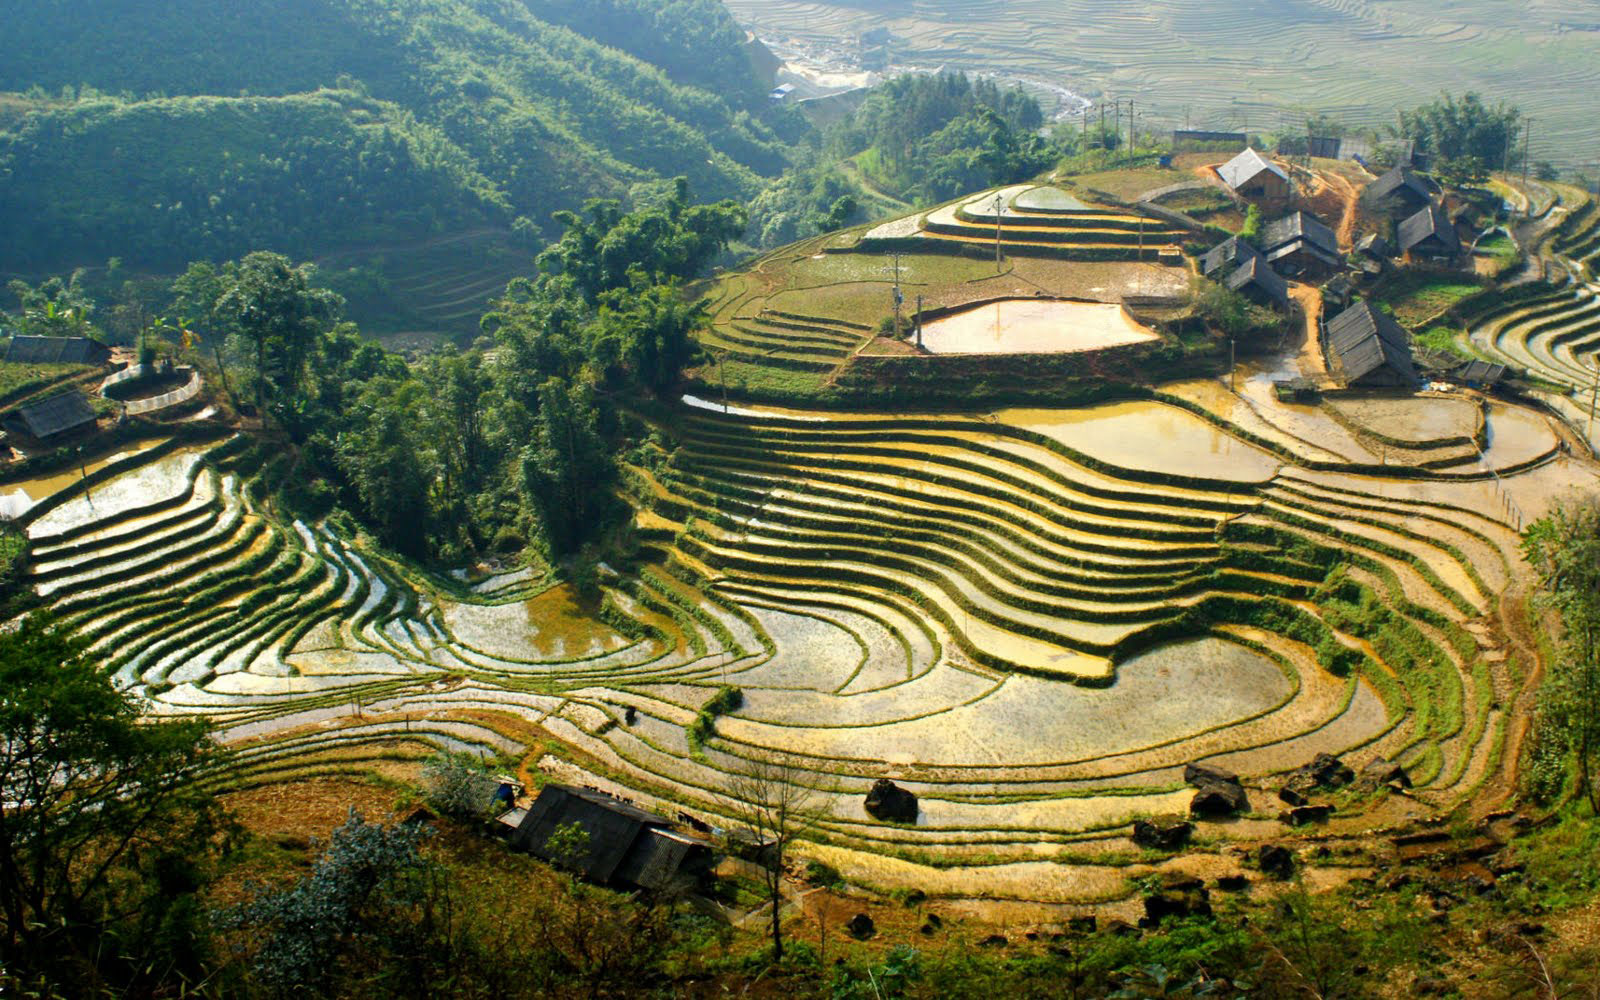 SAPA TOUR BY BUS/LUXURY VAN - 3 DAYS 2 NIGHTS - HOTEL